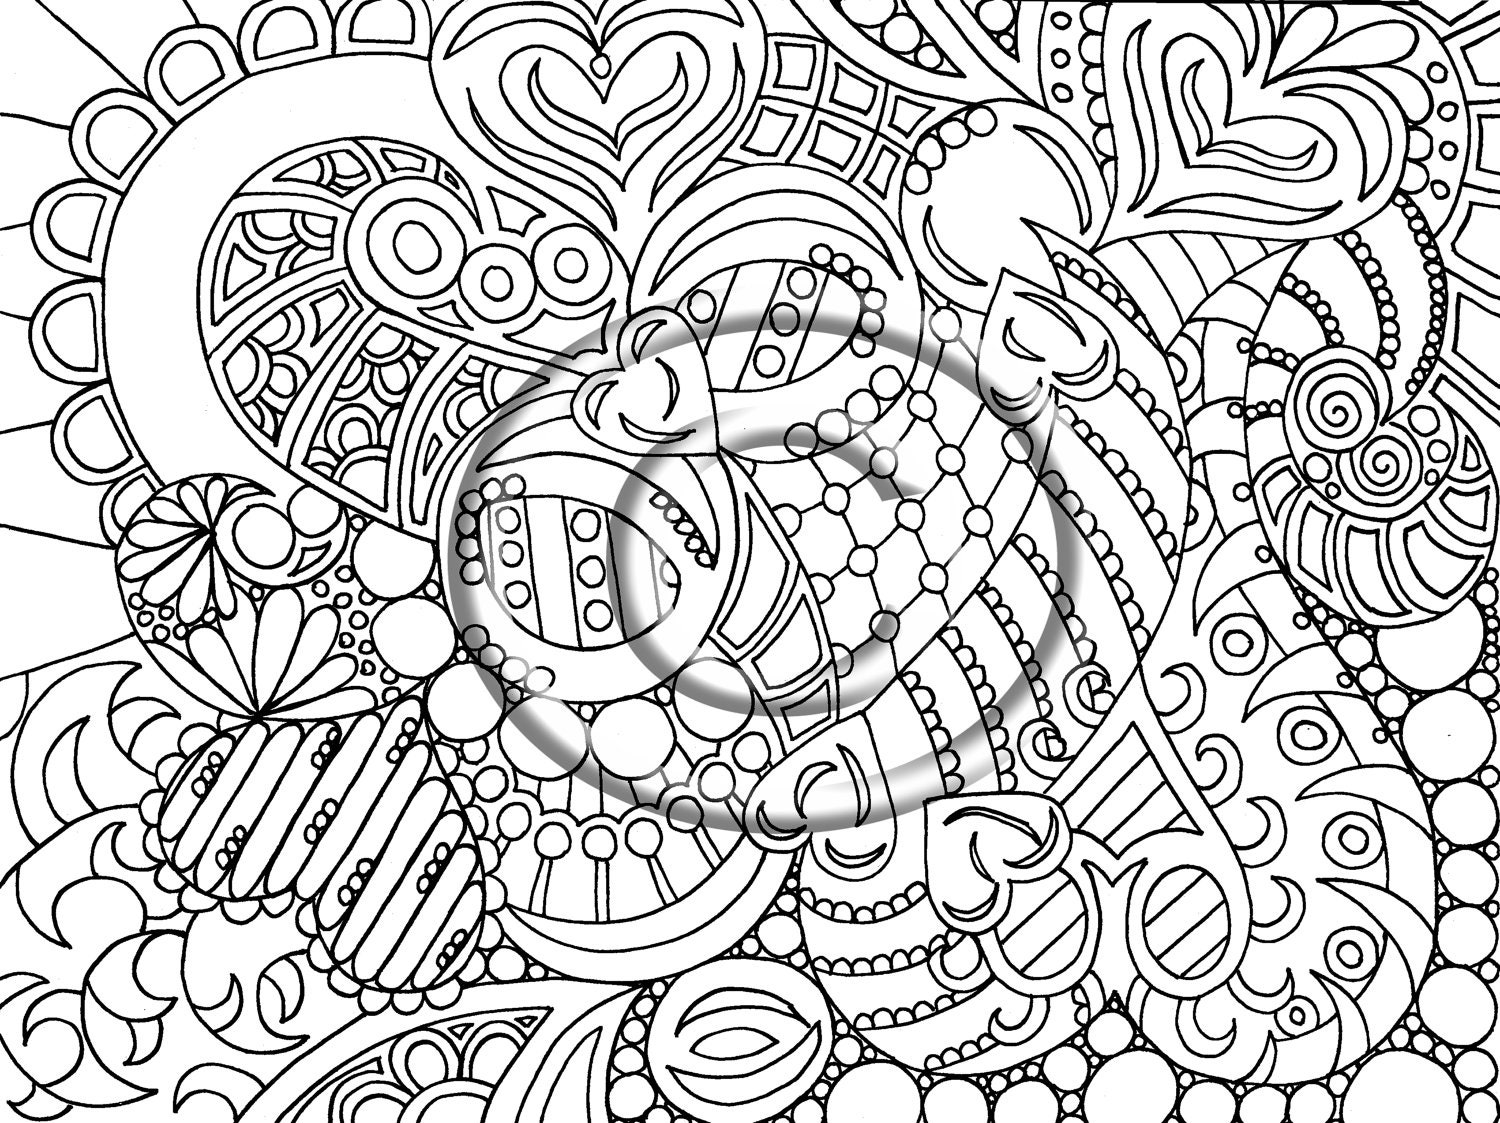 sunrise coloring pages - photo#25